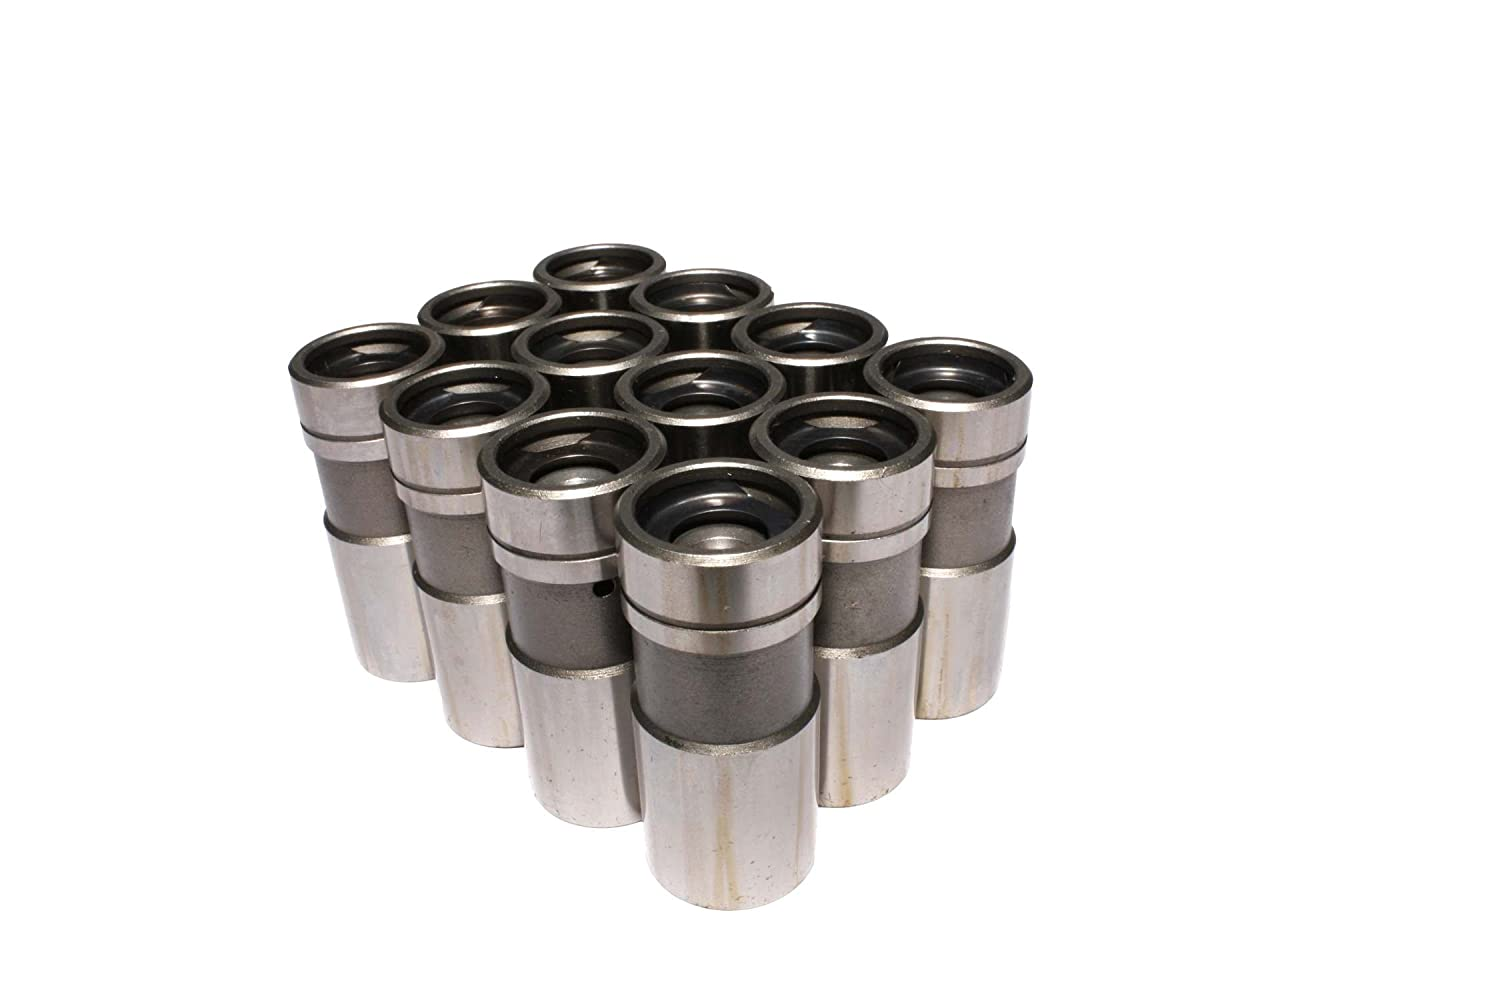 COMP Cams 862-12 Pro Magnum Hydraulic Lifter for 289-302 Small Block//351 Windsor//Cleveland//429-460 Ford, Set of 12